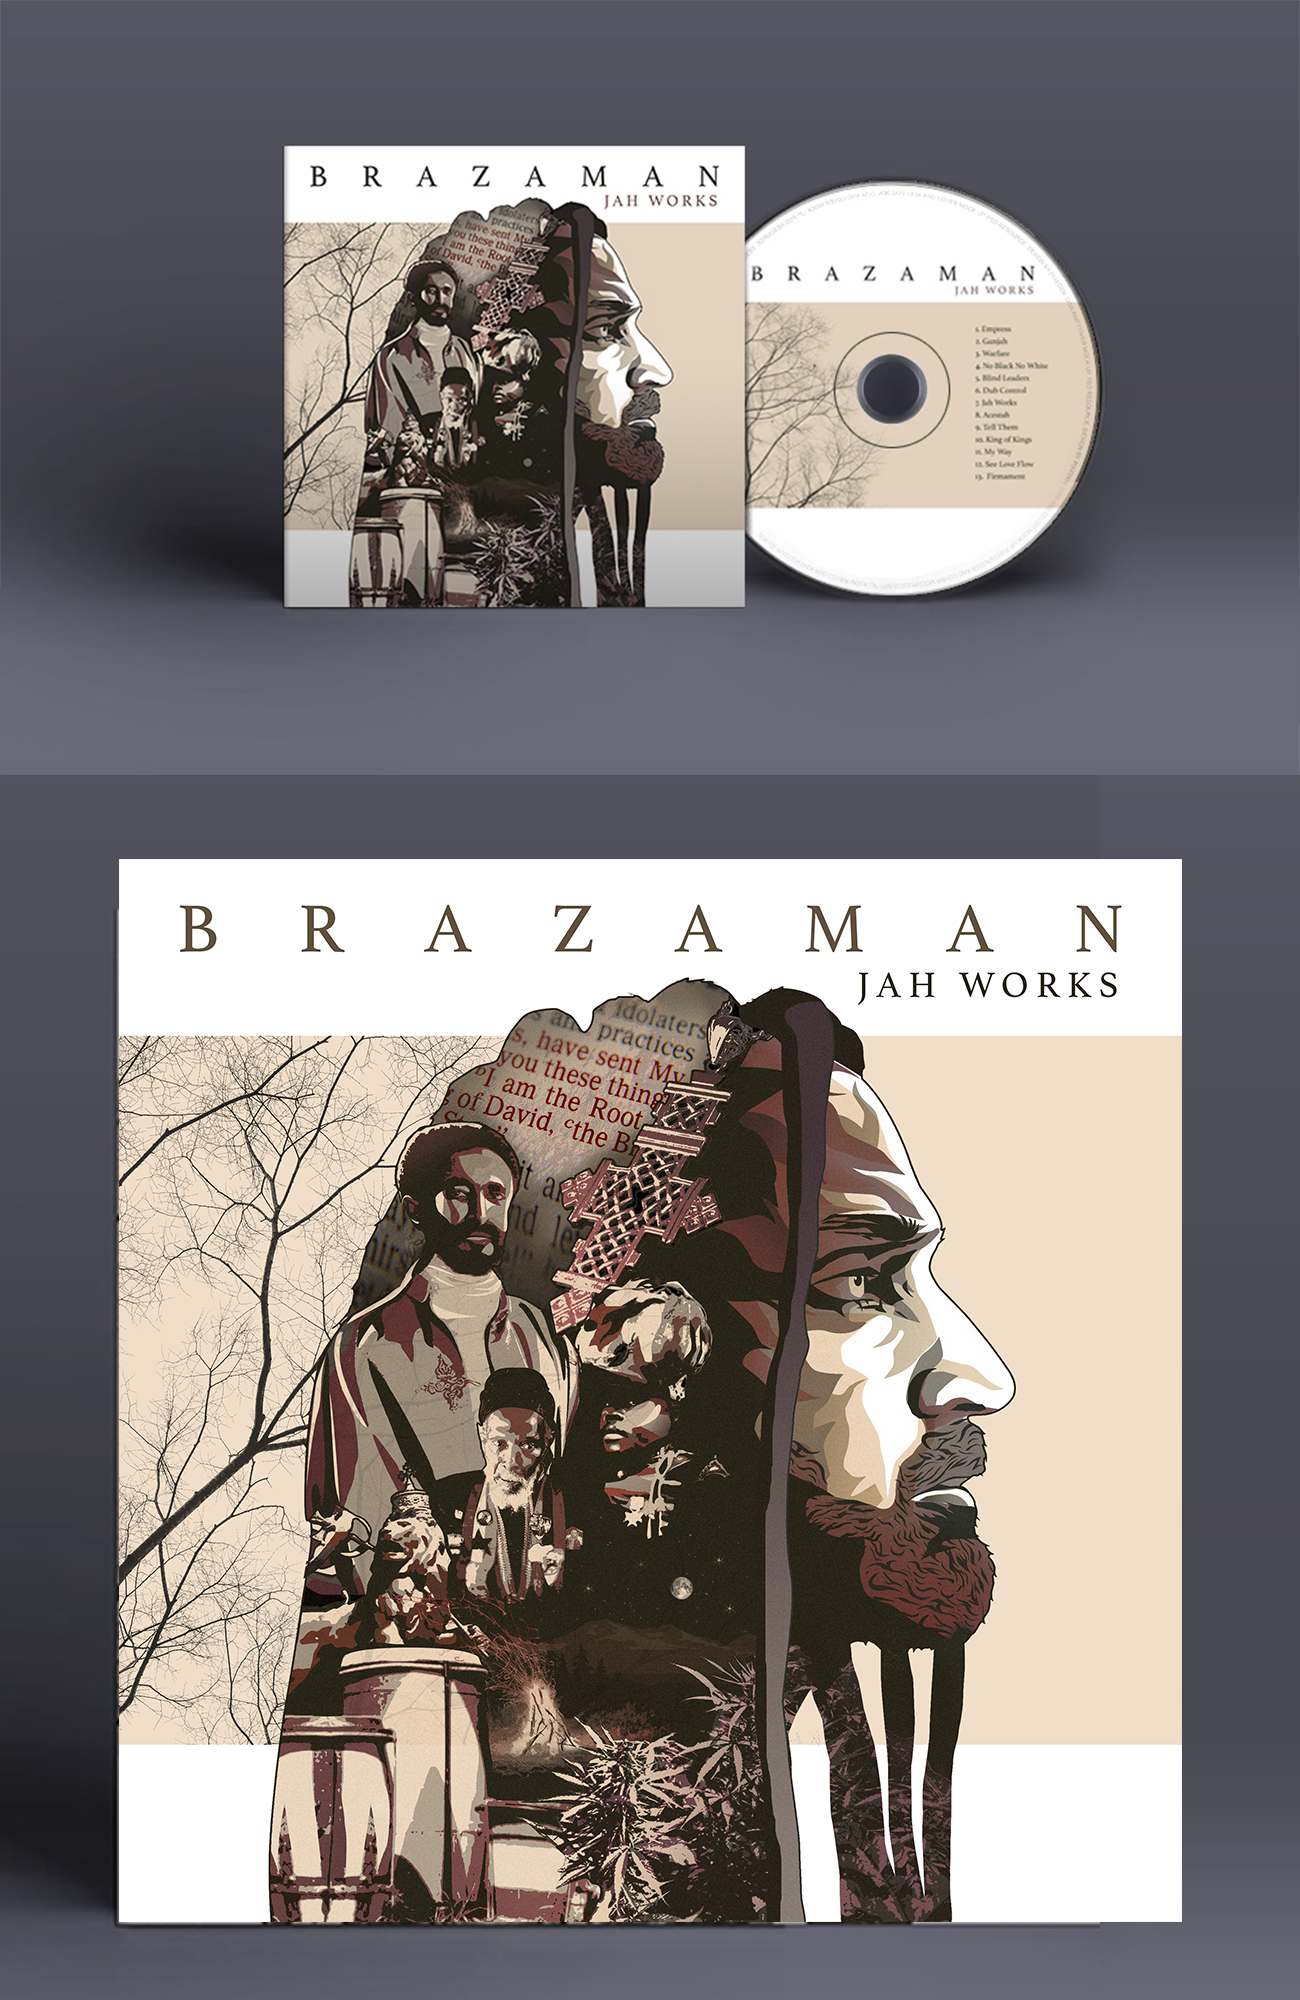 Brazaman Cd Cover